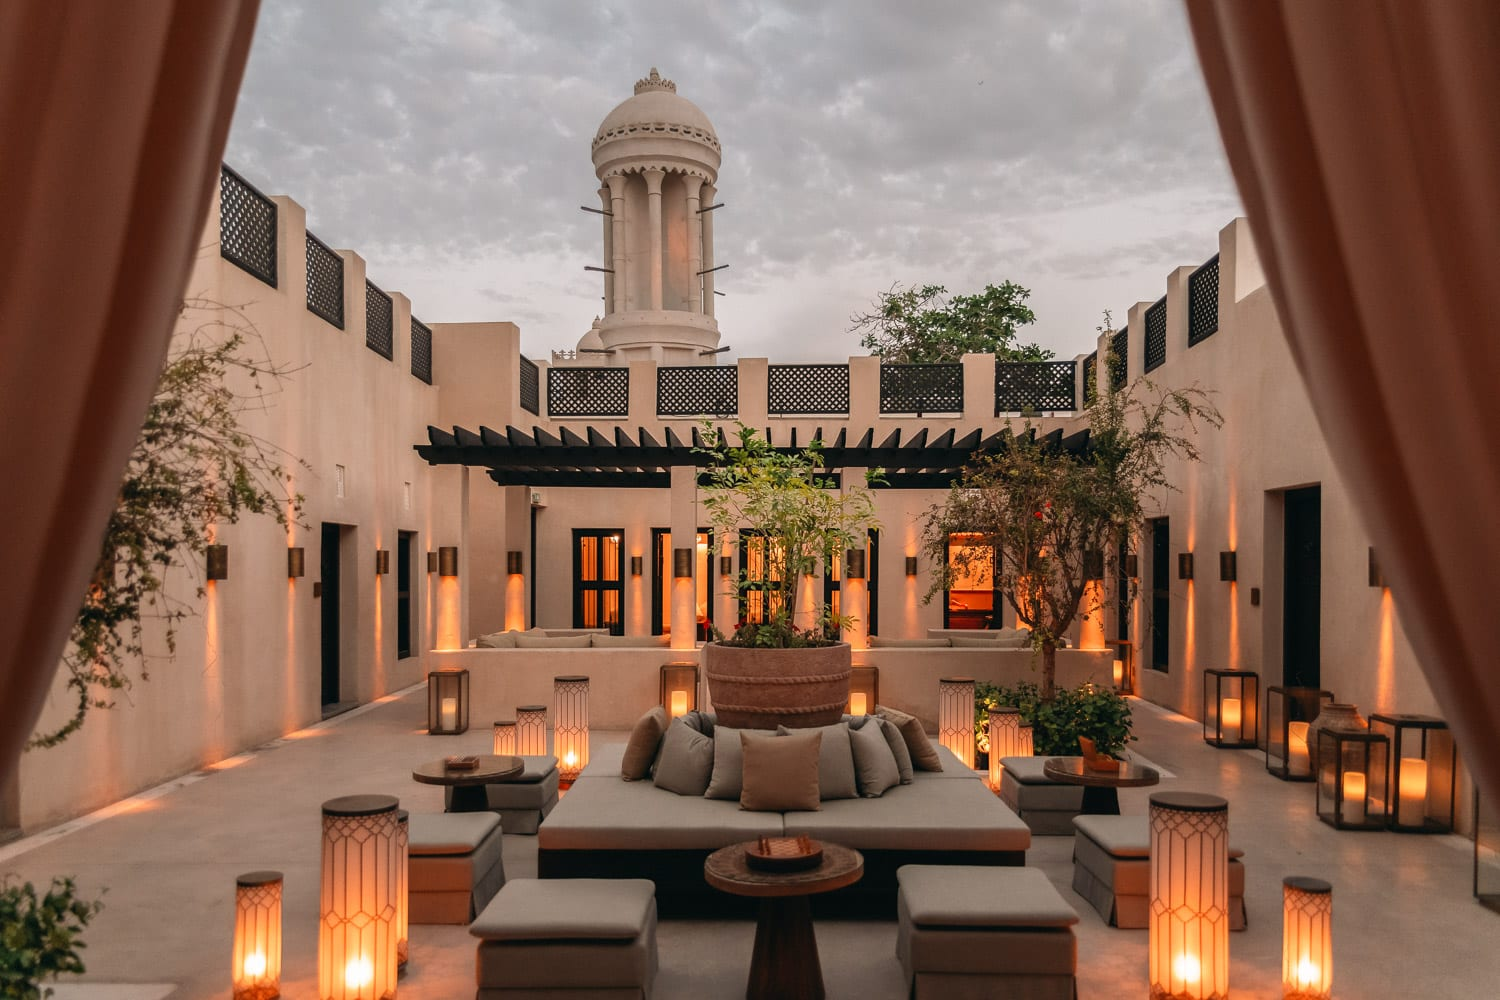 Al Bait Sharjah Hotel Review - A Five-Star Boutique Resort in UAE